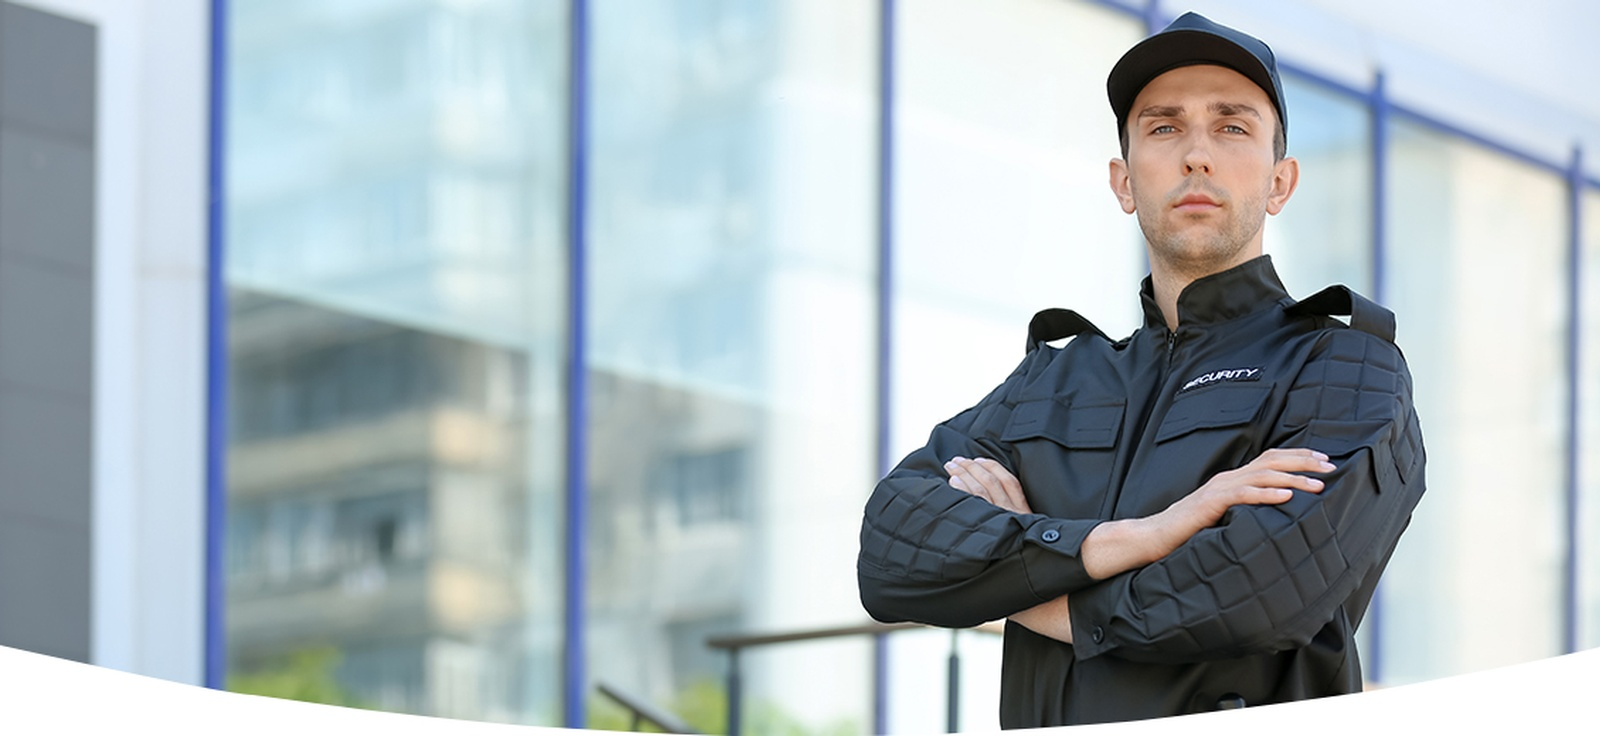 Professional Security Guard Services Lakewood by Markham Investigation and Protection